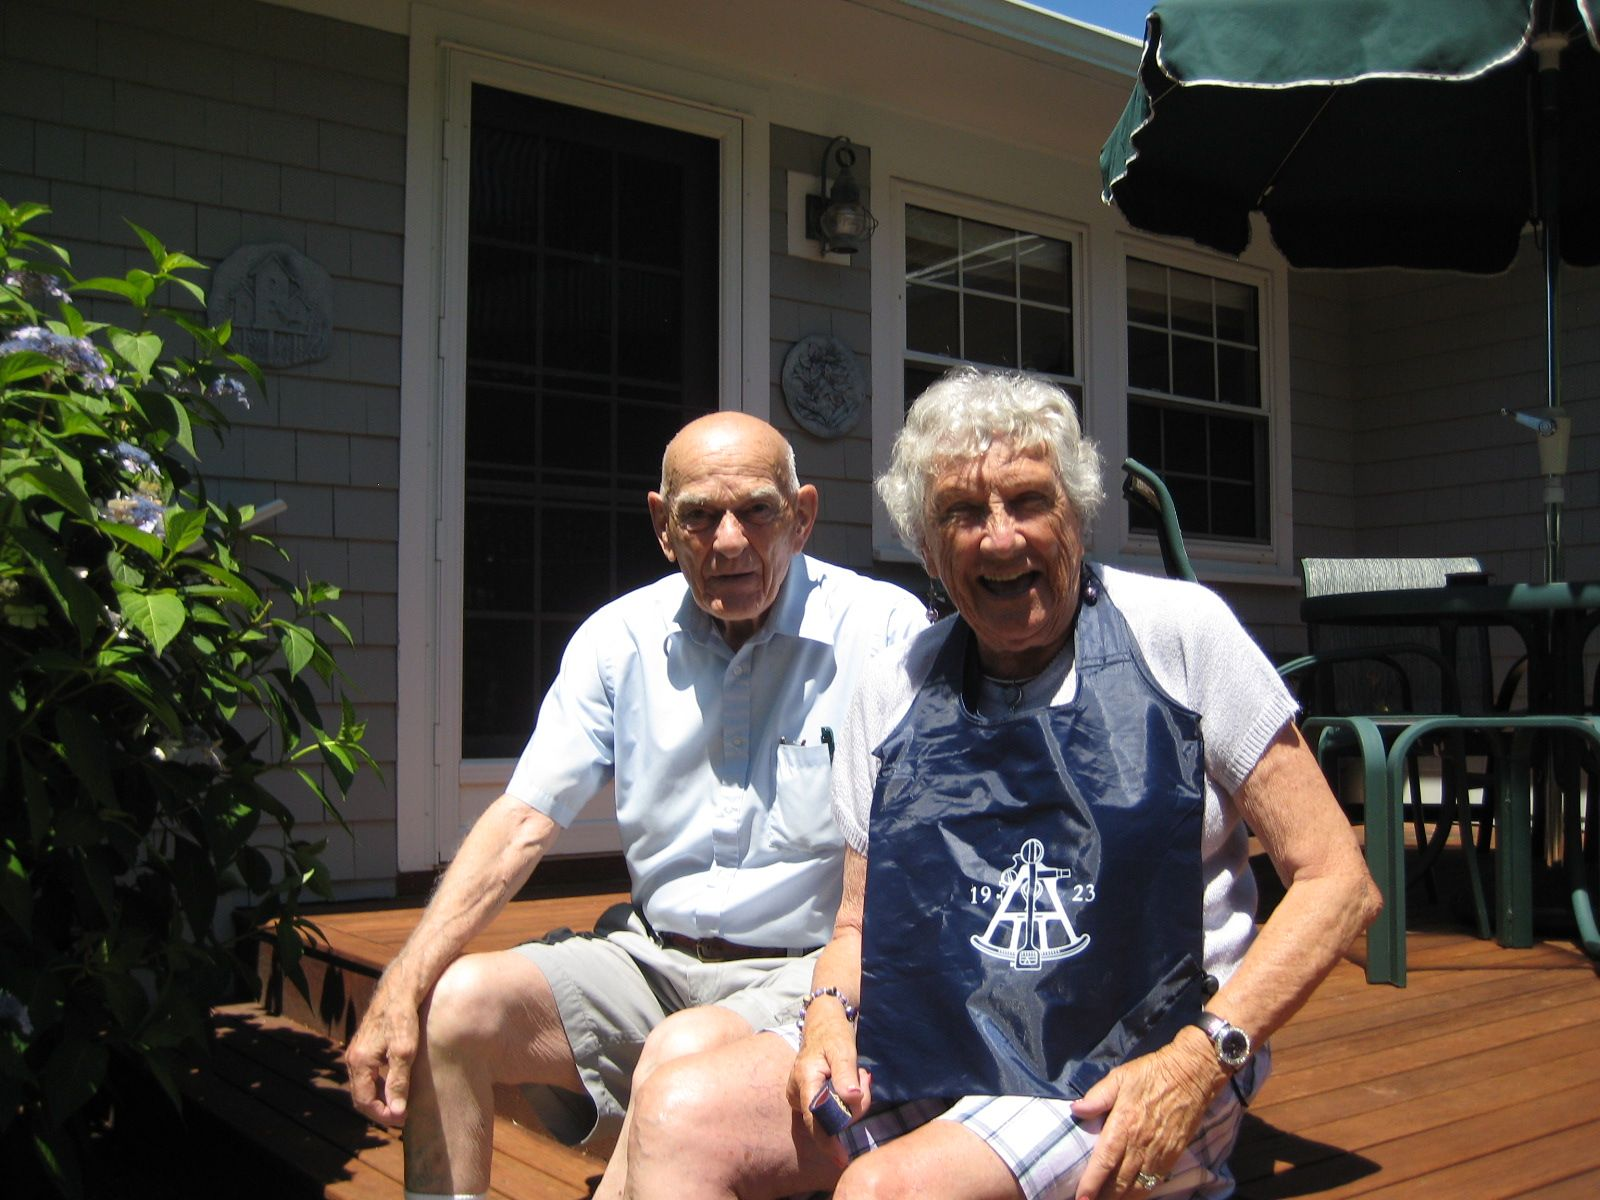 Jane and Dick Wilson '48 in Dennis, MA on Wednesday July 22, 2015.